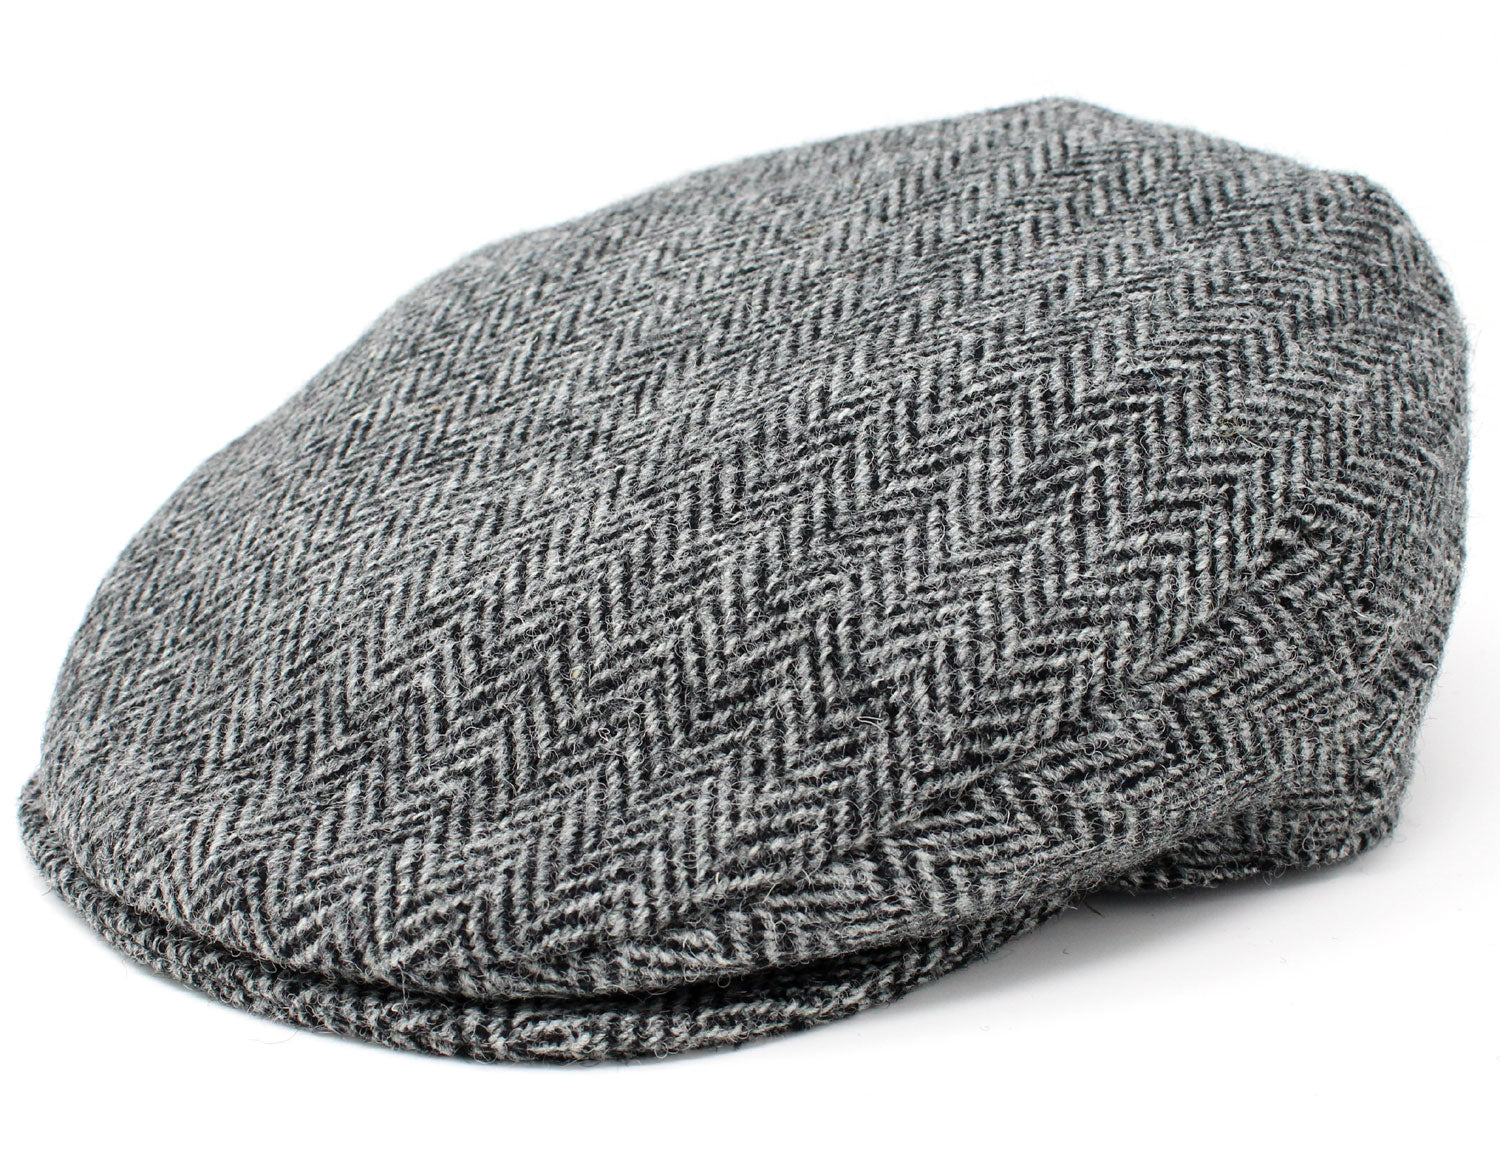 Hanna Vintage Tweed Cap | Black and Grey Herringbone